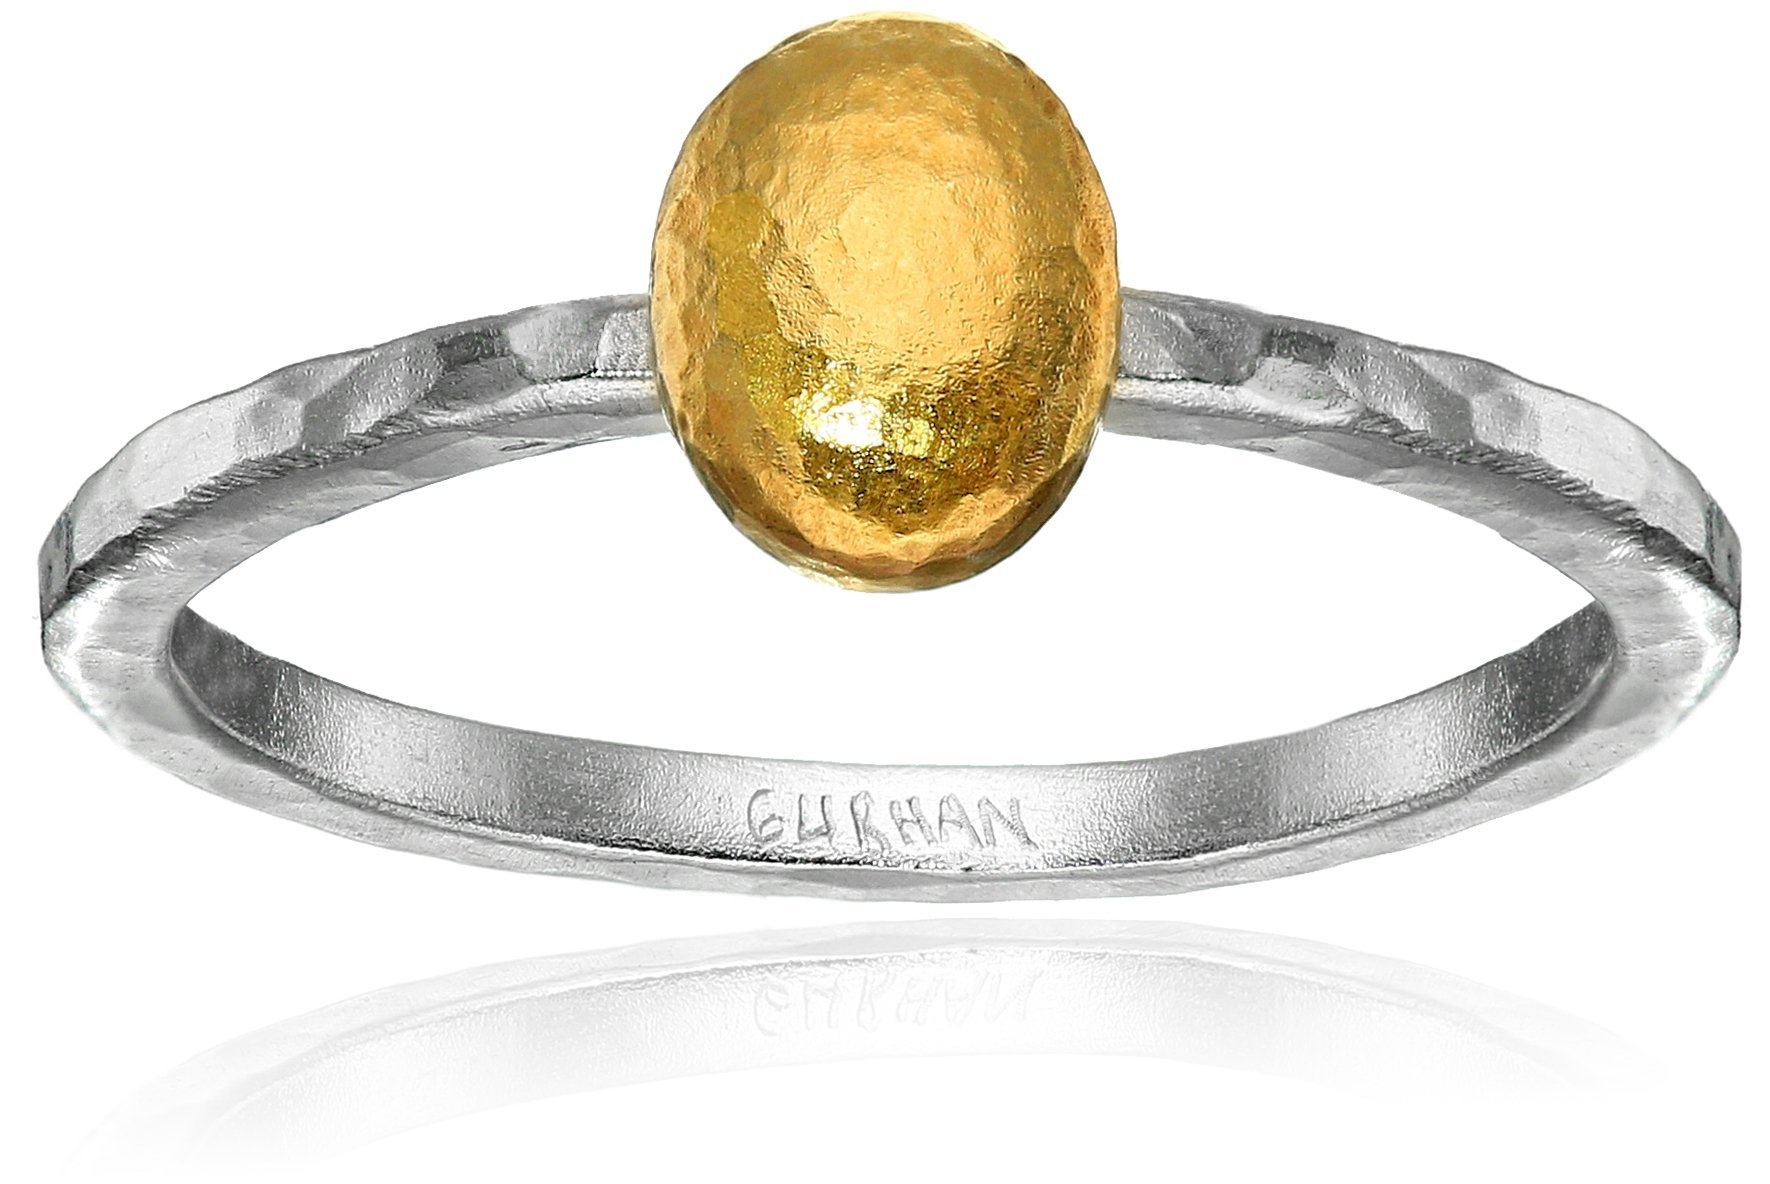 GURHAN Jordan Sterling Silver Layered with 24k Gold Small Stackable Ring, Size 6.5